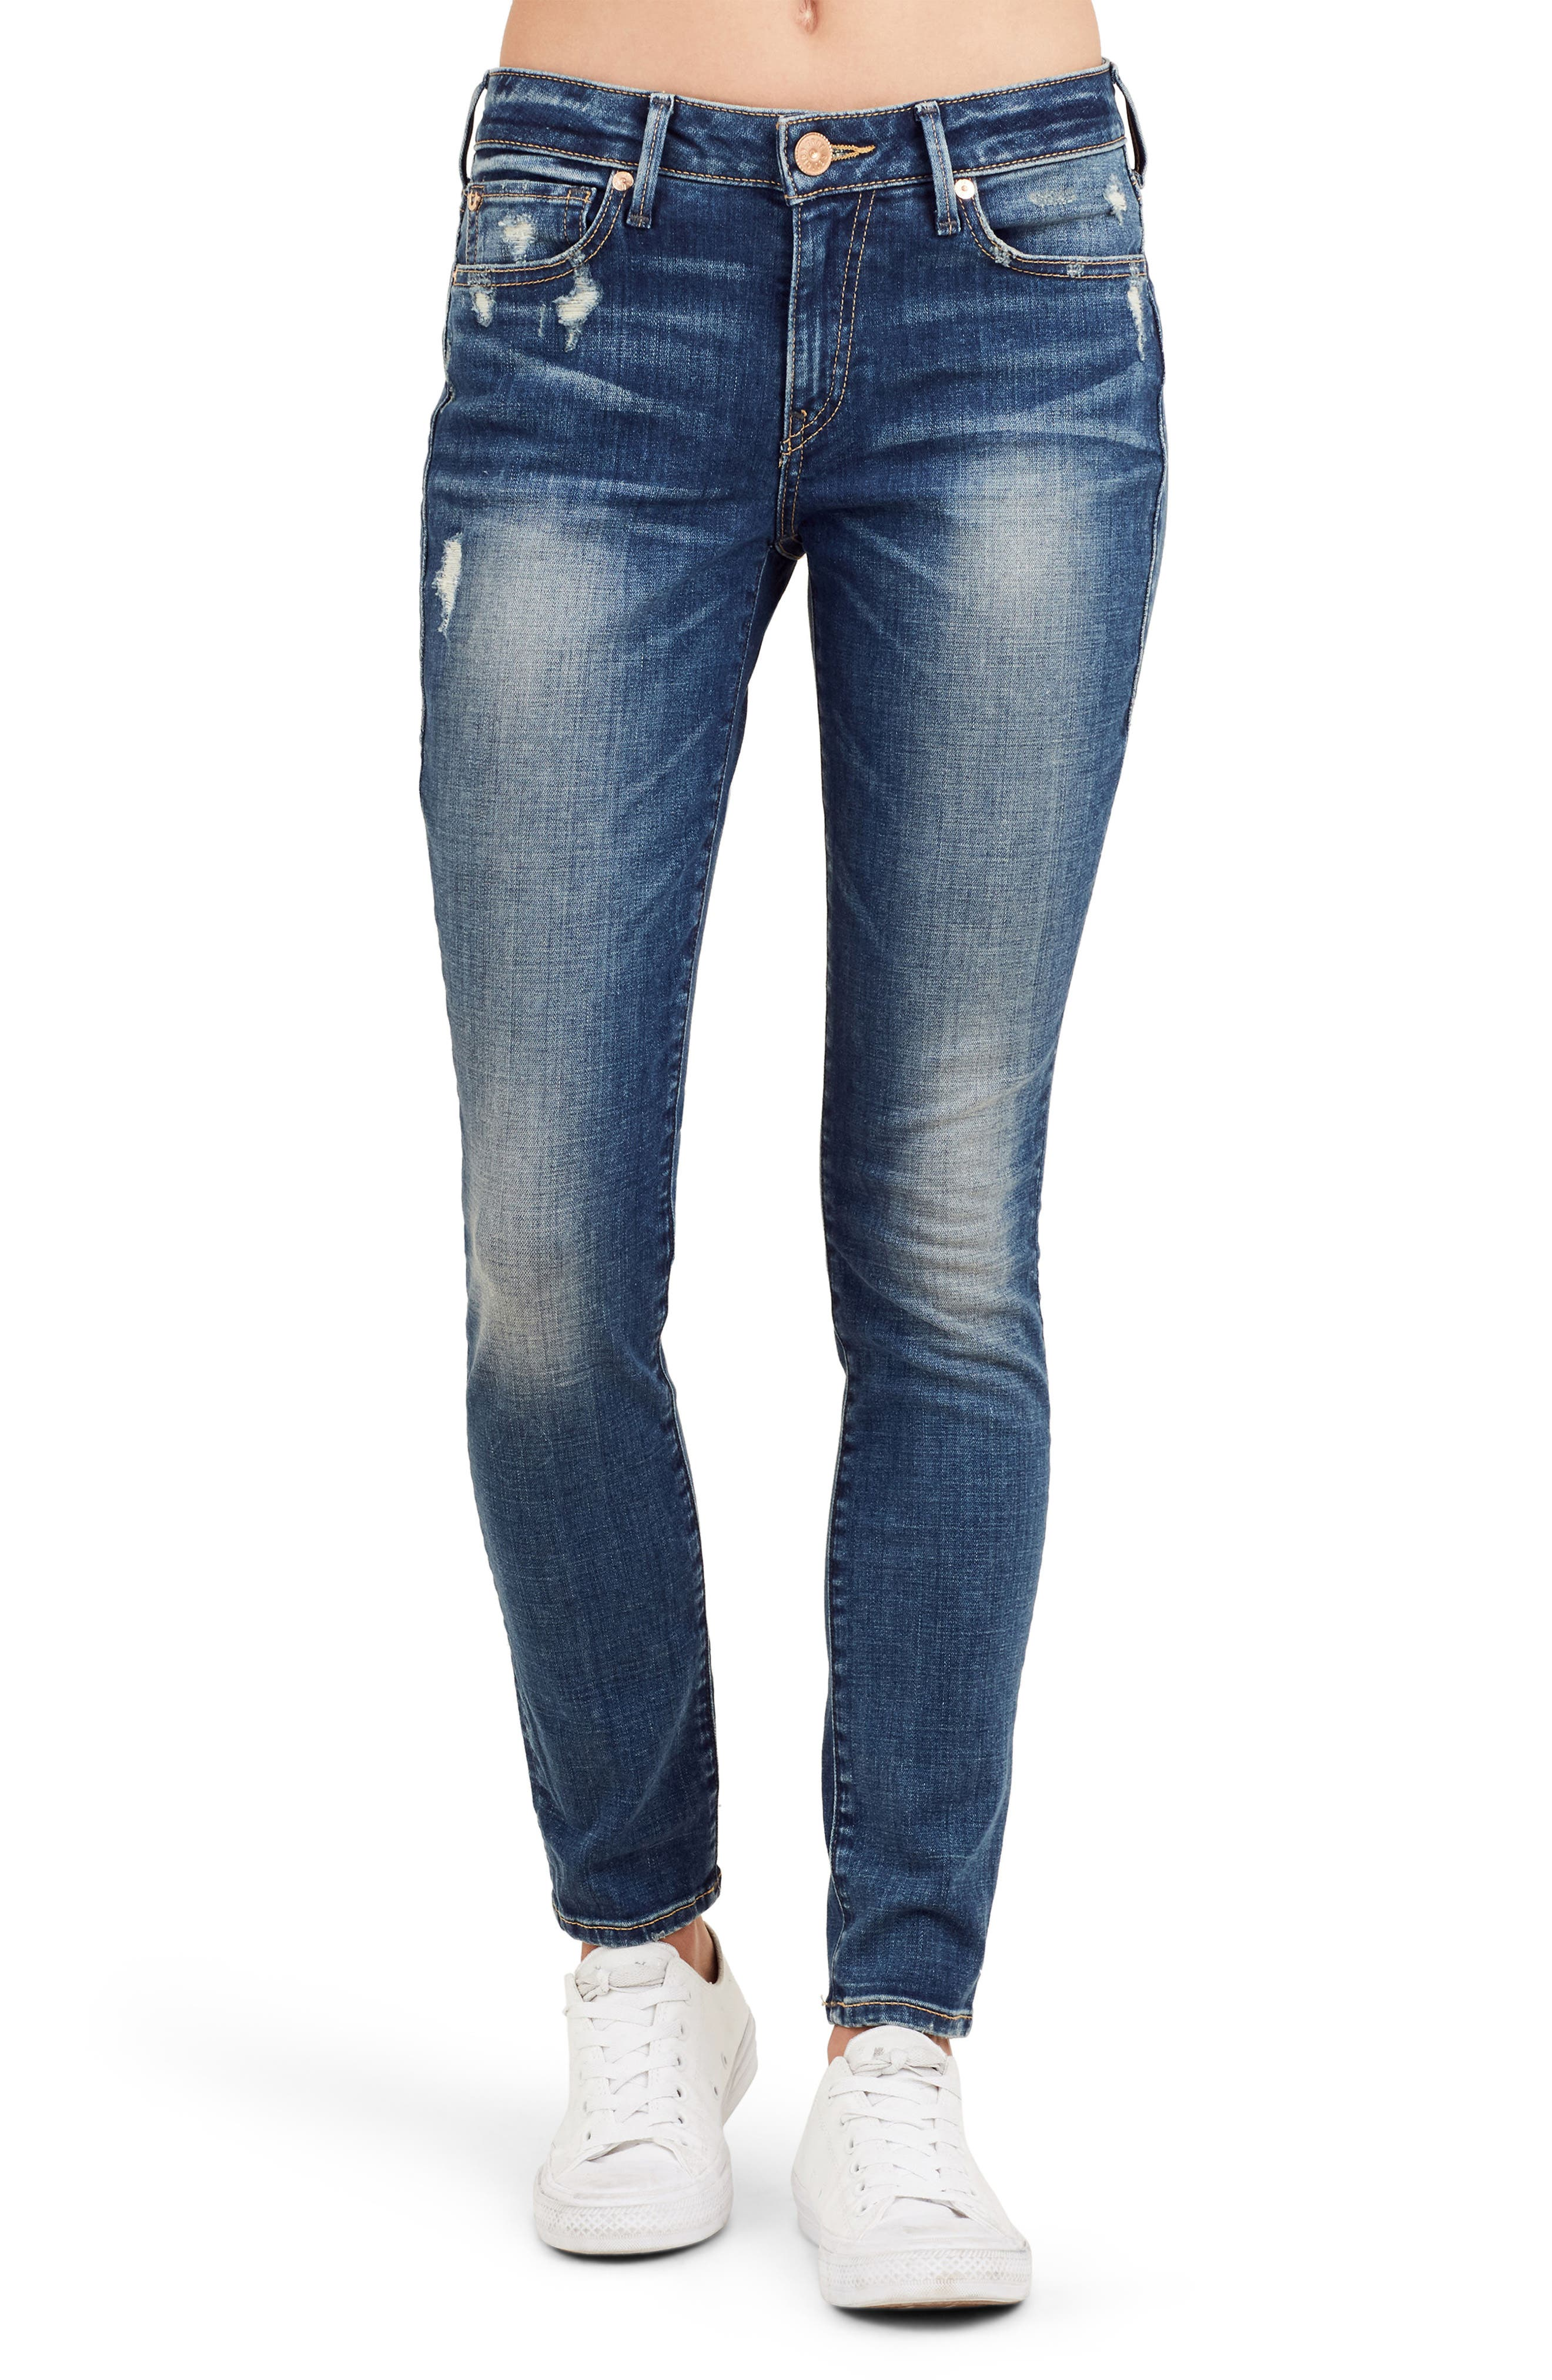 Main Image - True Religion Brand Jeans Jennie Curvy Ankle Skinny Jeans (Bell Blues)